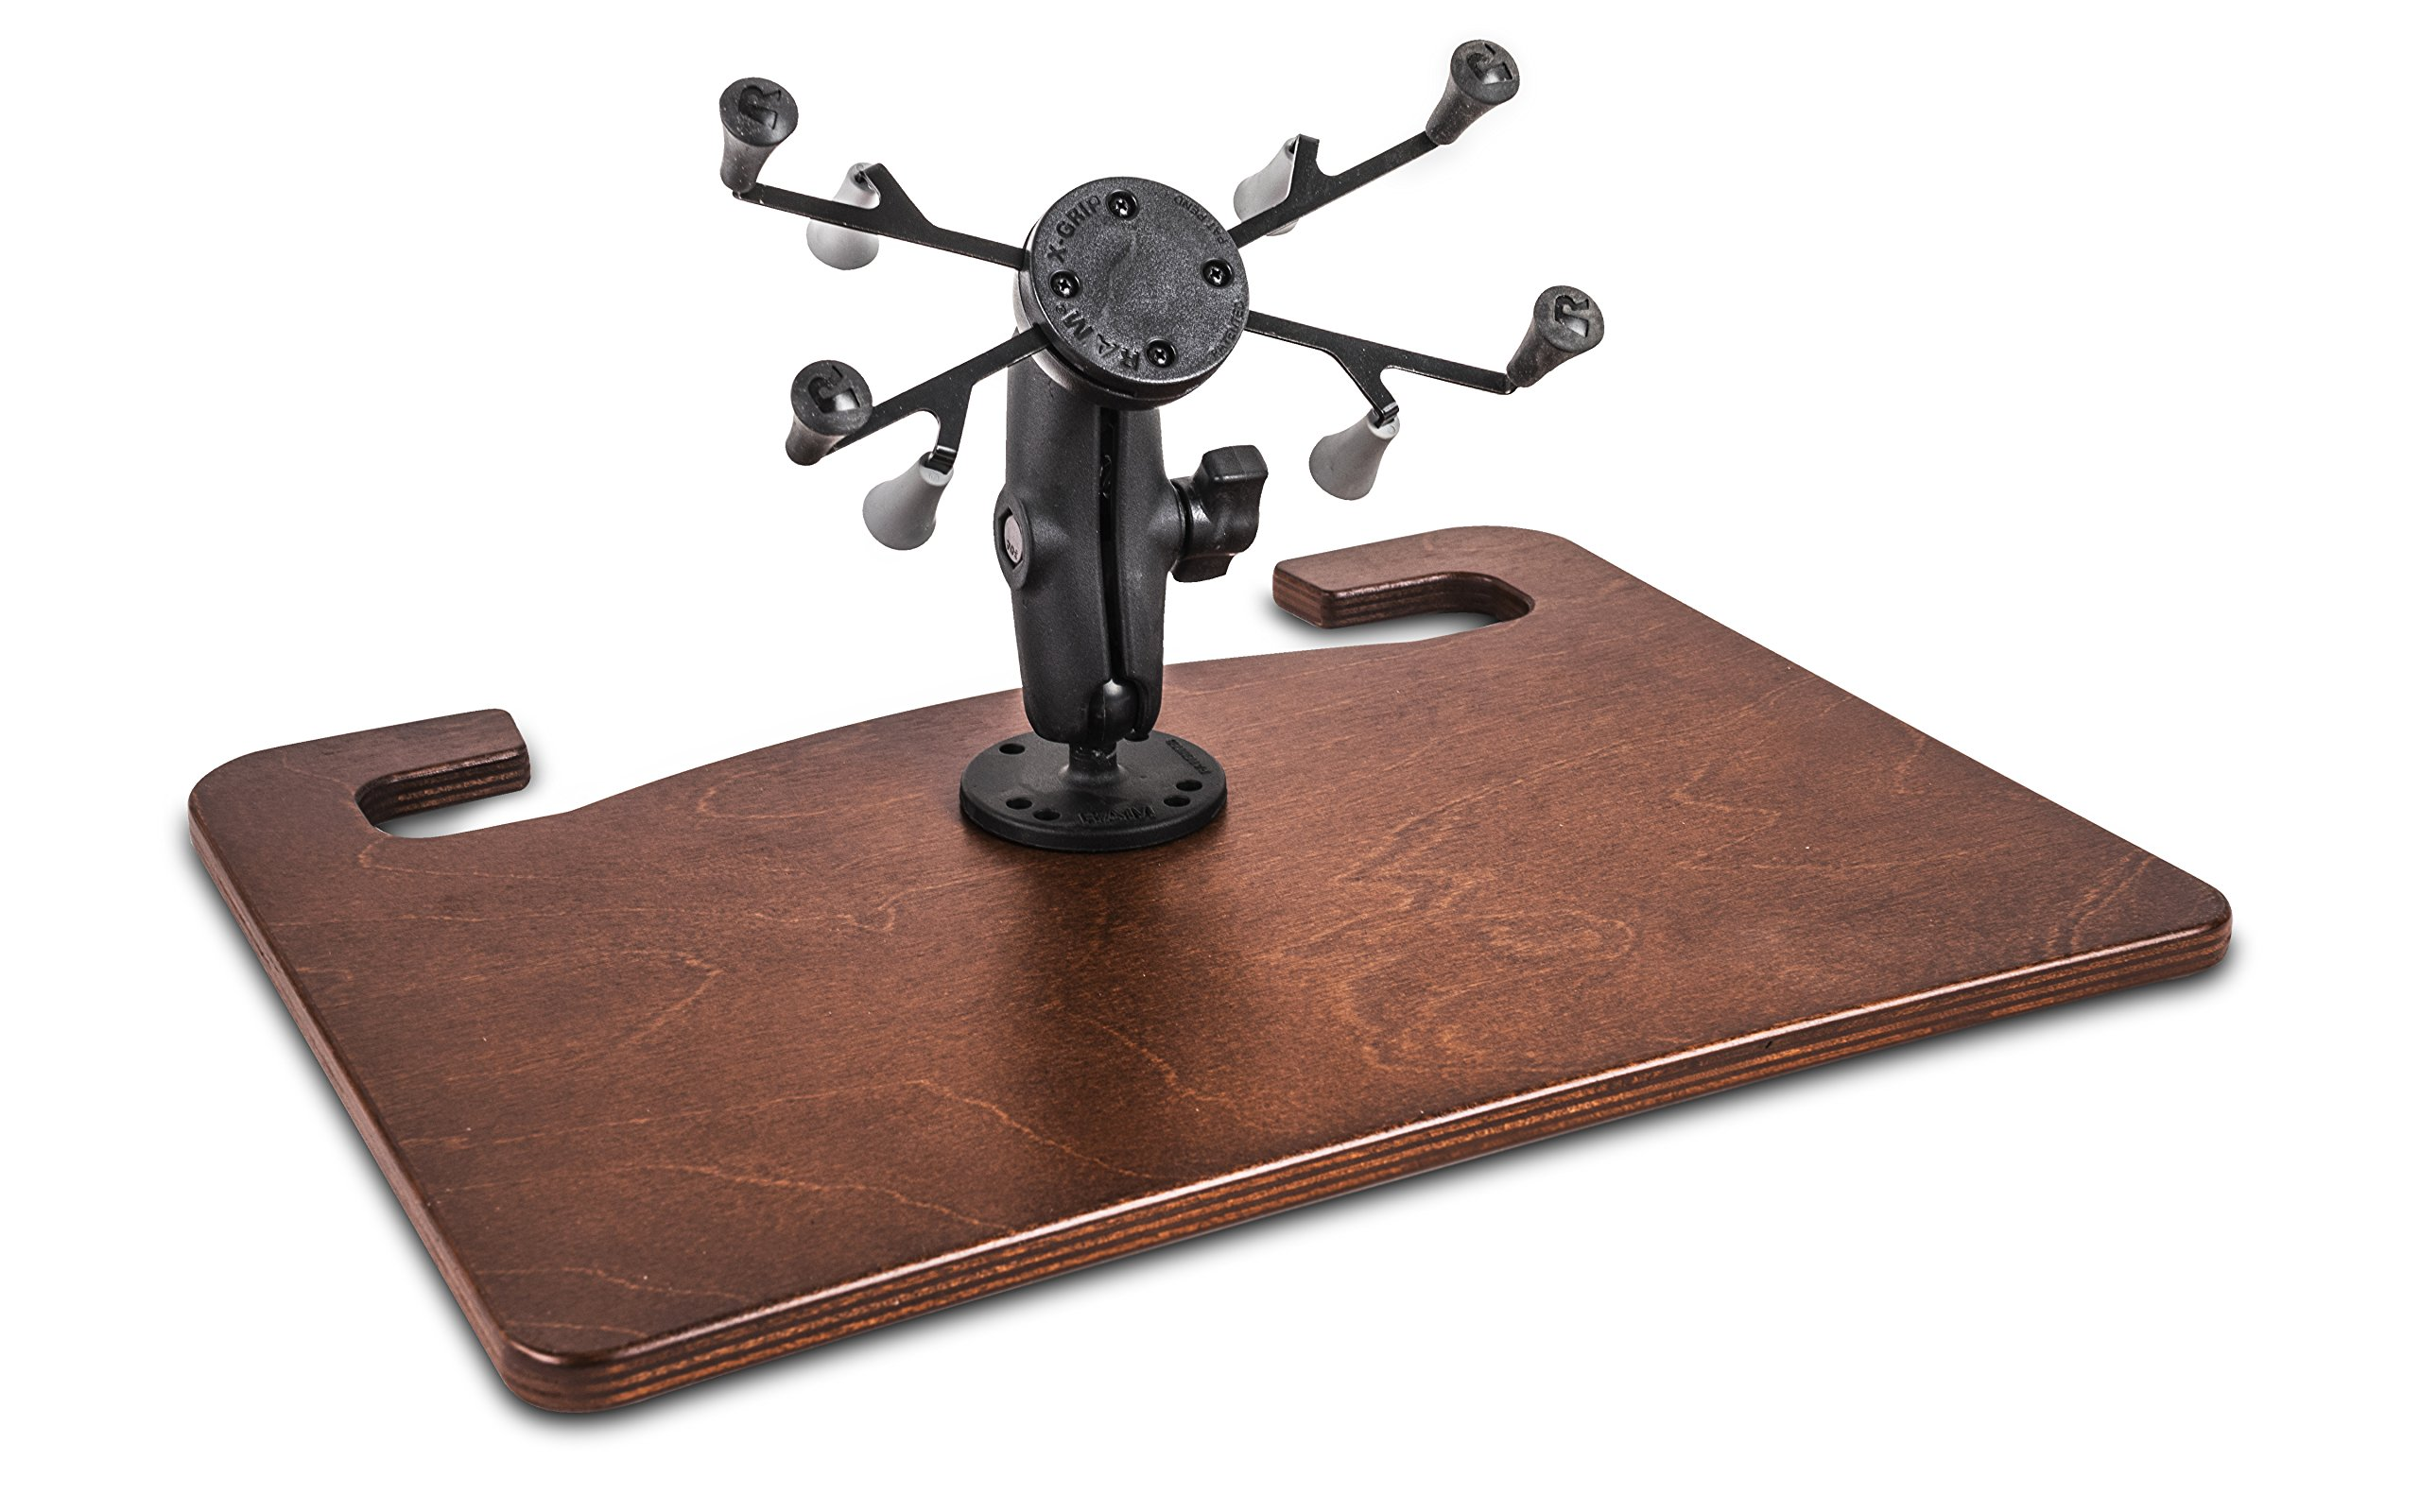 AutoExec AUE72003 Wheelmate Extreme with 7'' X-Grip Tablet Mount in Mahogany Finish